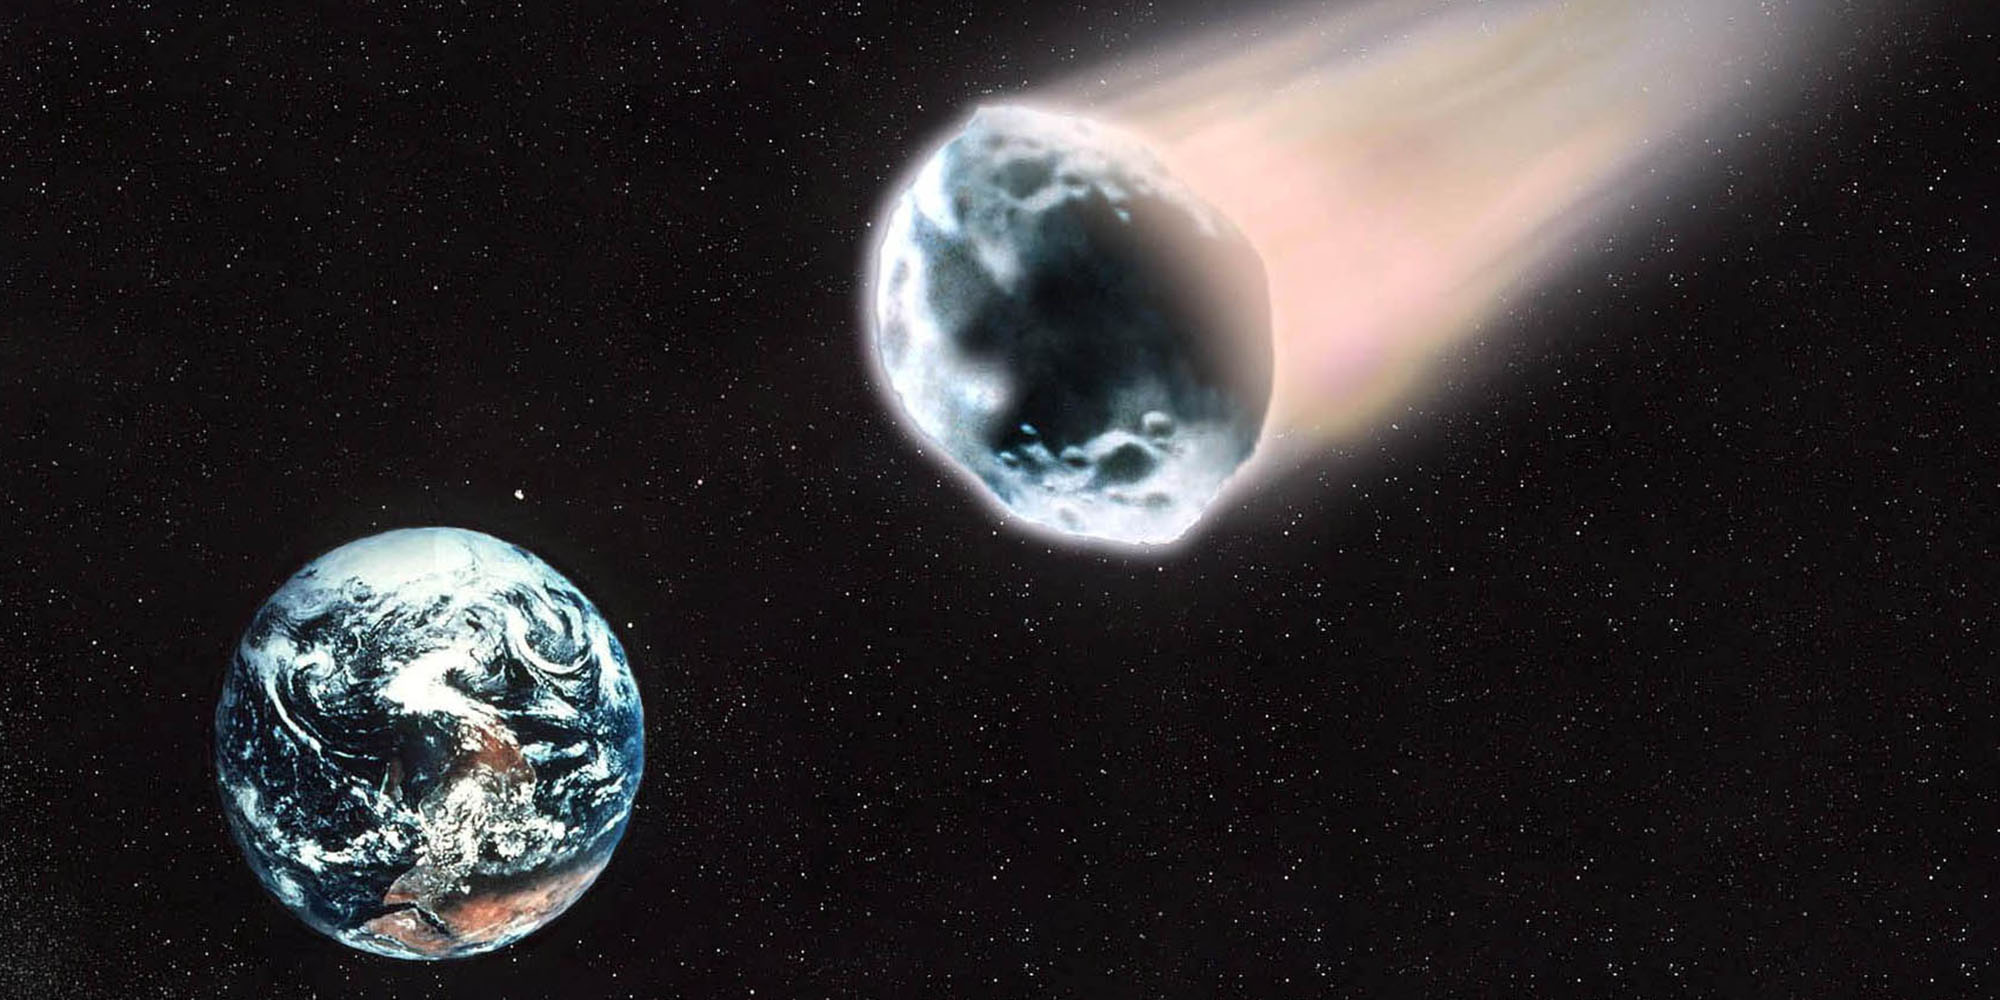 A 'potentially hazardous' asteroid will narrowly miss Earth just after Christmas – indy100